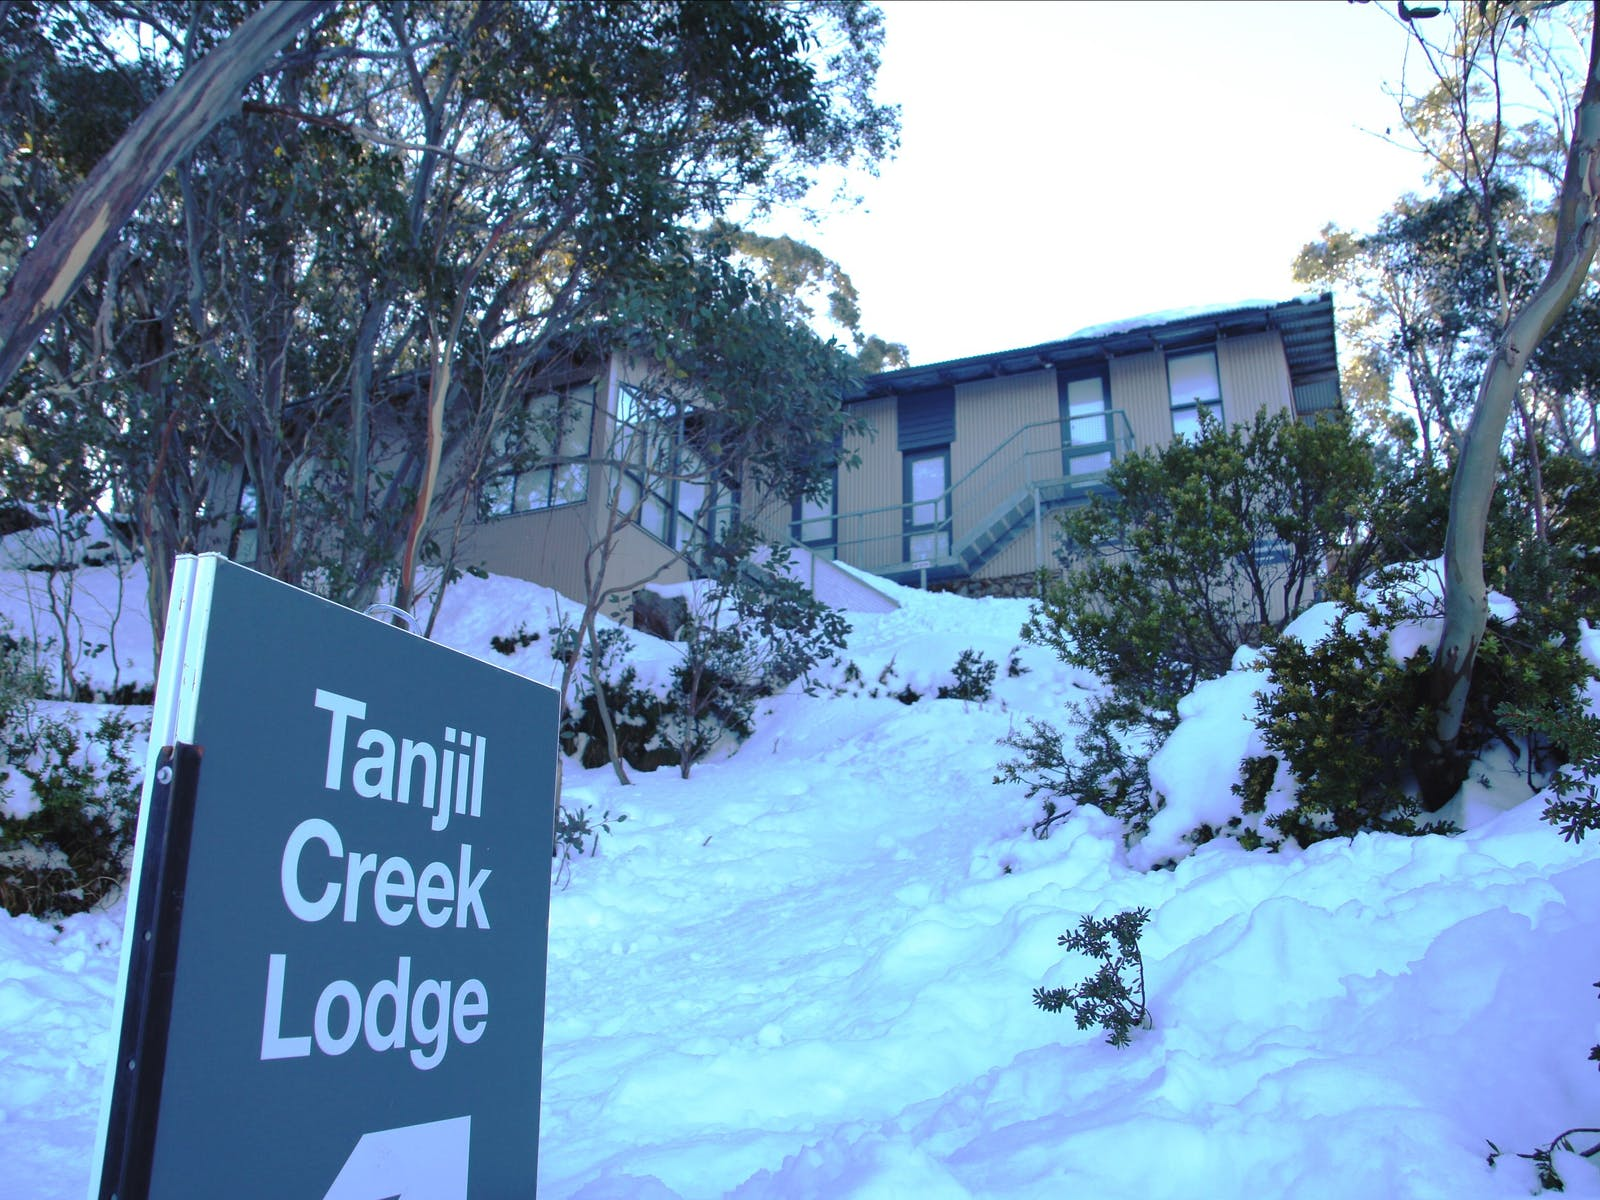 Winter wonderland atTanjil Creek Lodge Mt BawBaw